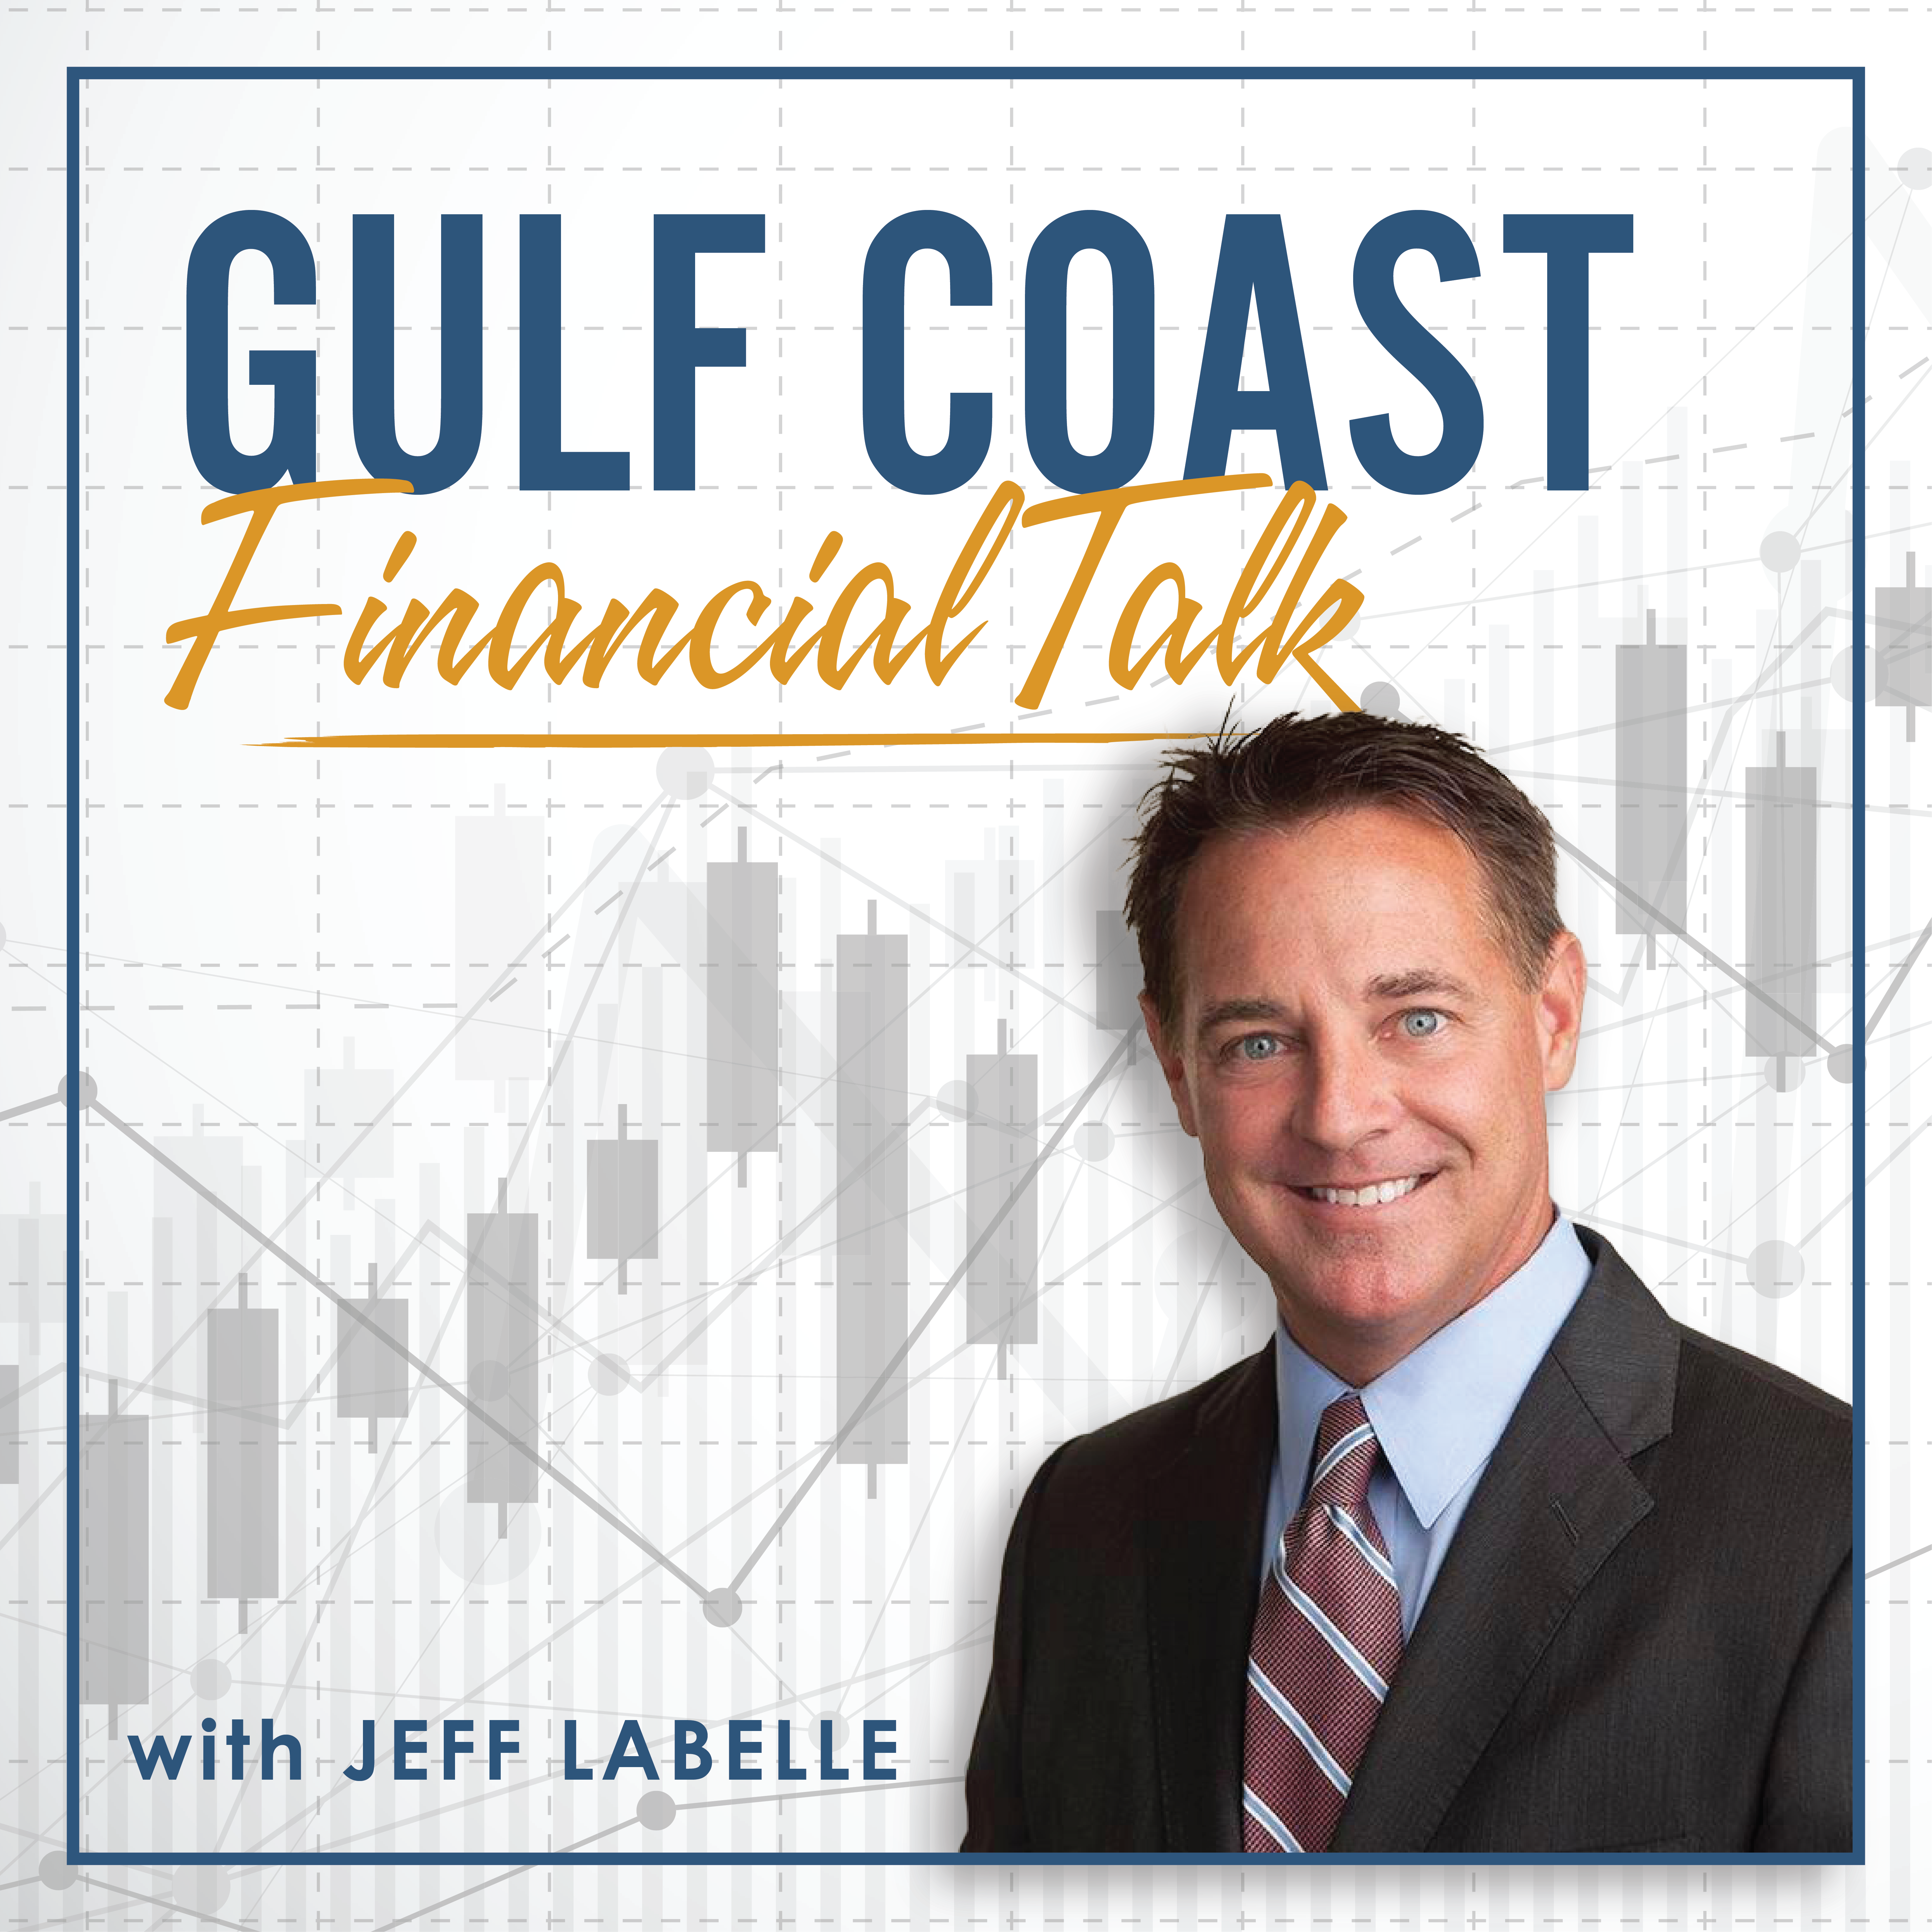 Gulf Coast Financial Talk With Jeff Labelle